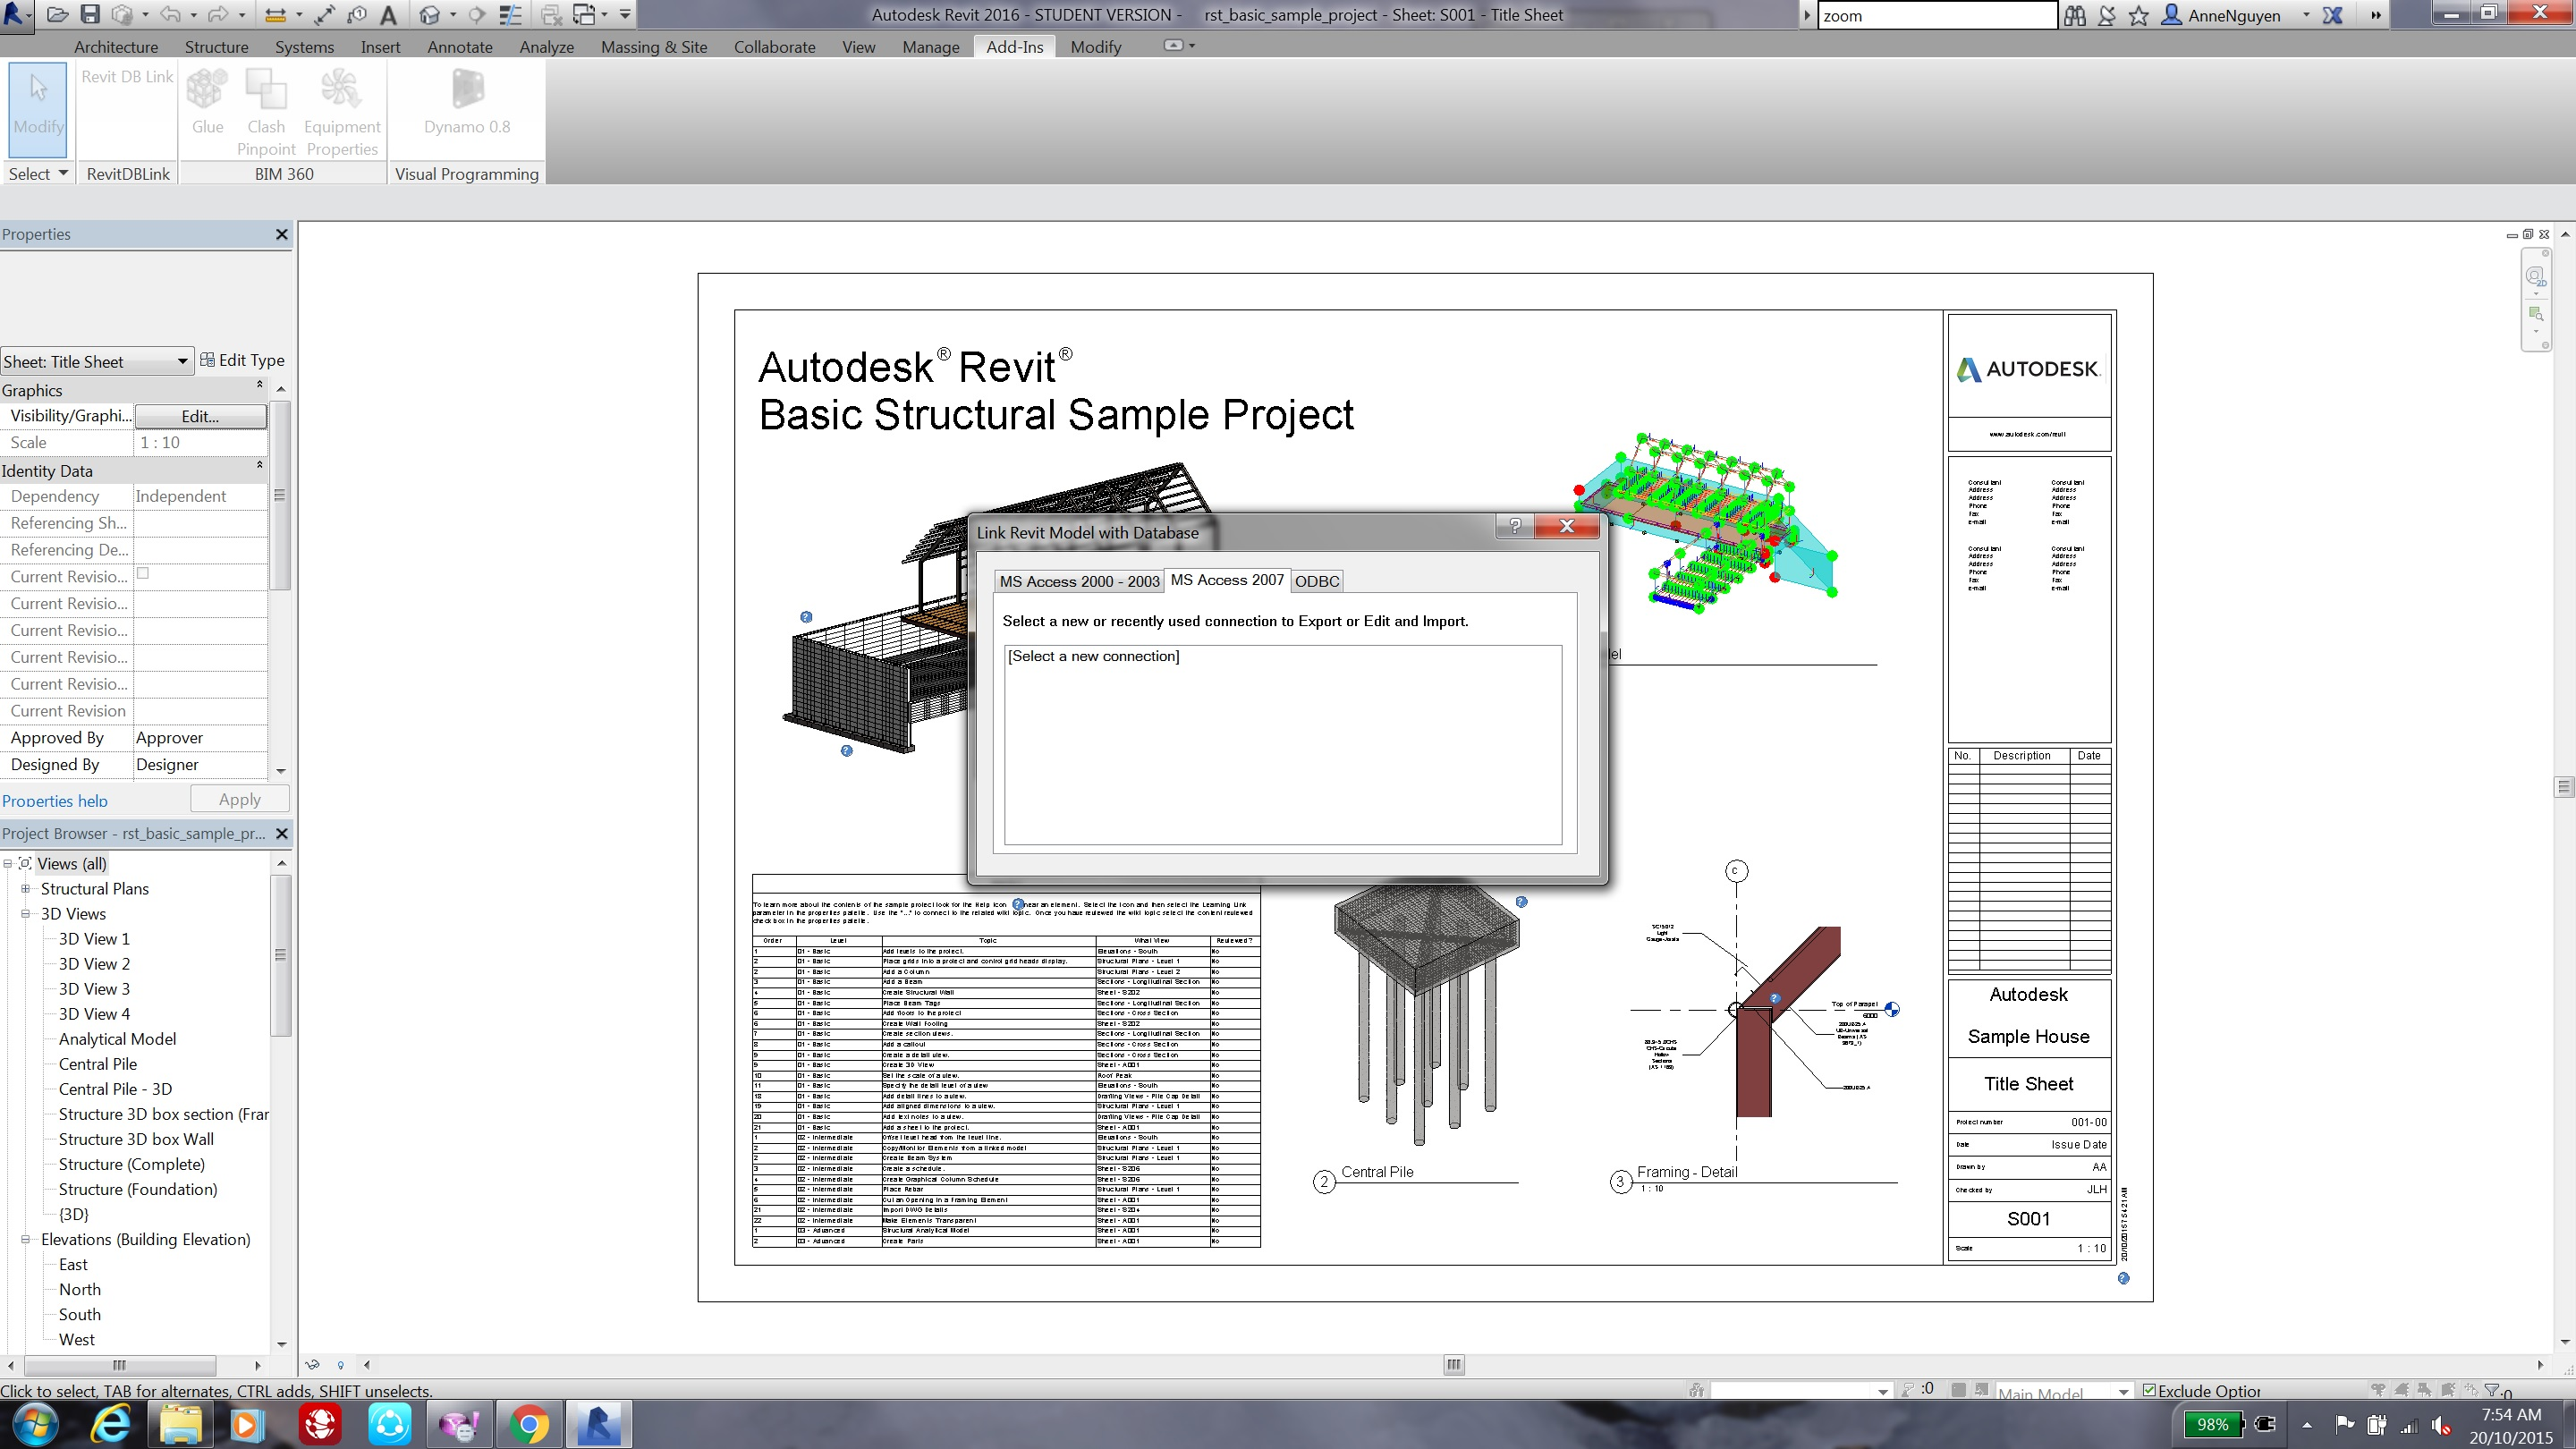 Revit DB Link Form missing all buttons - Autodesk Community